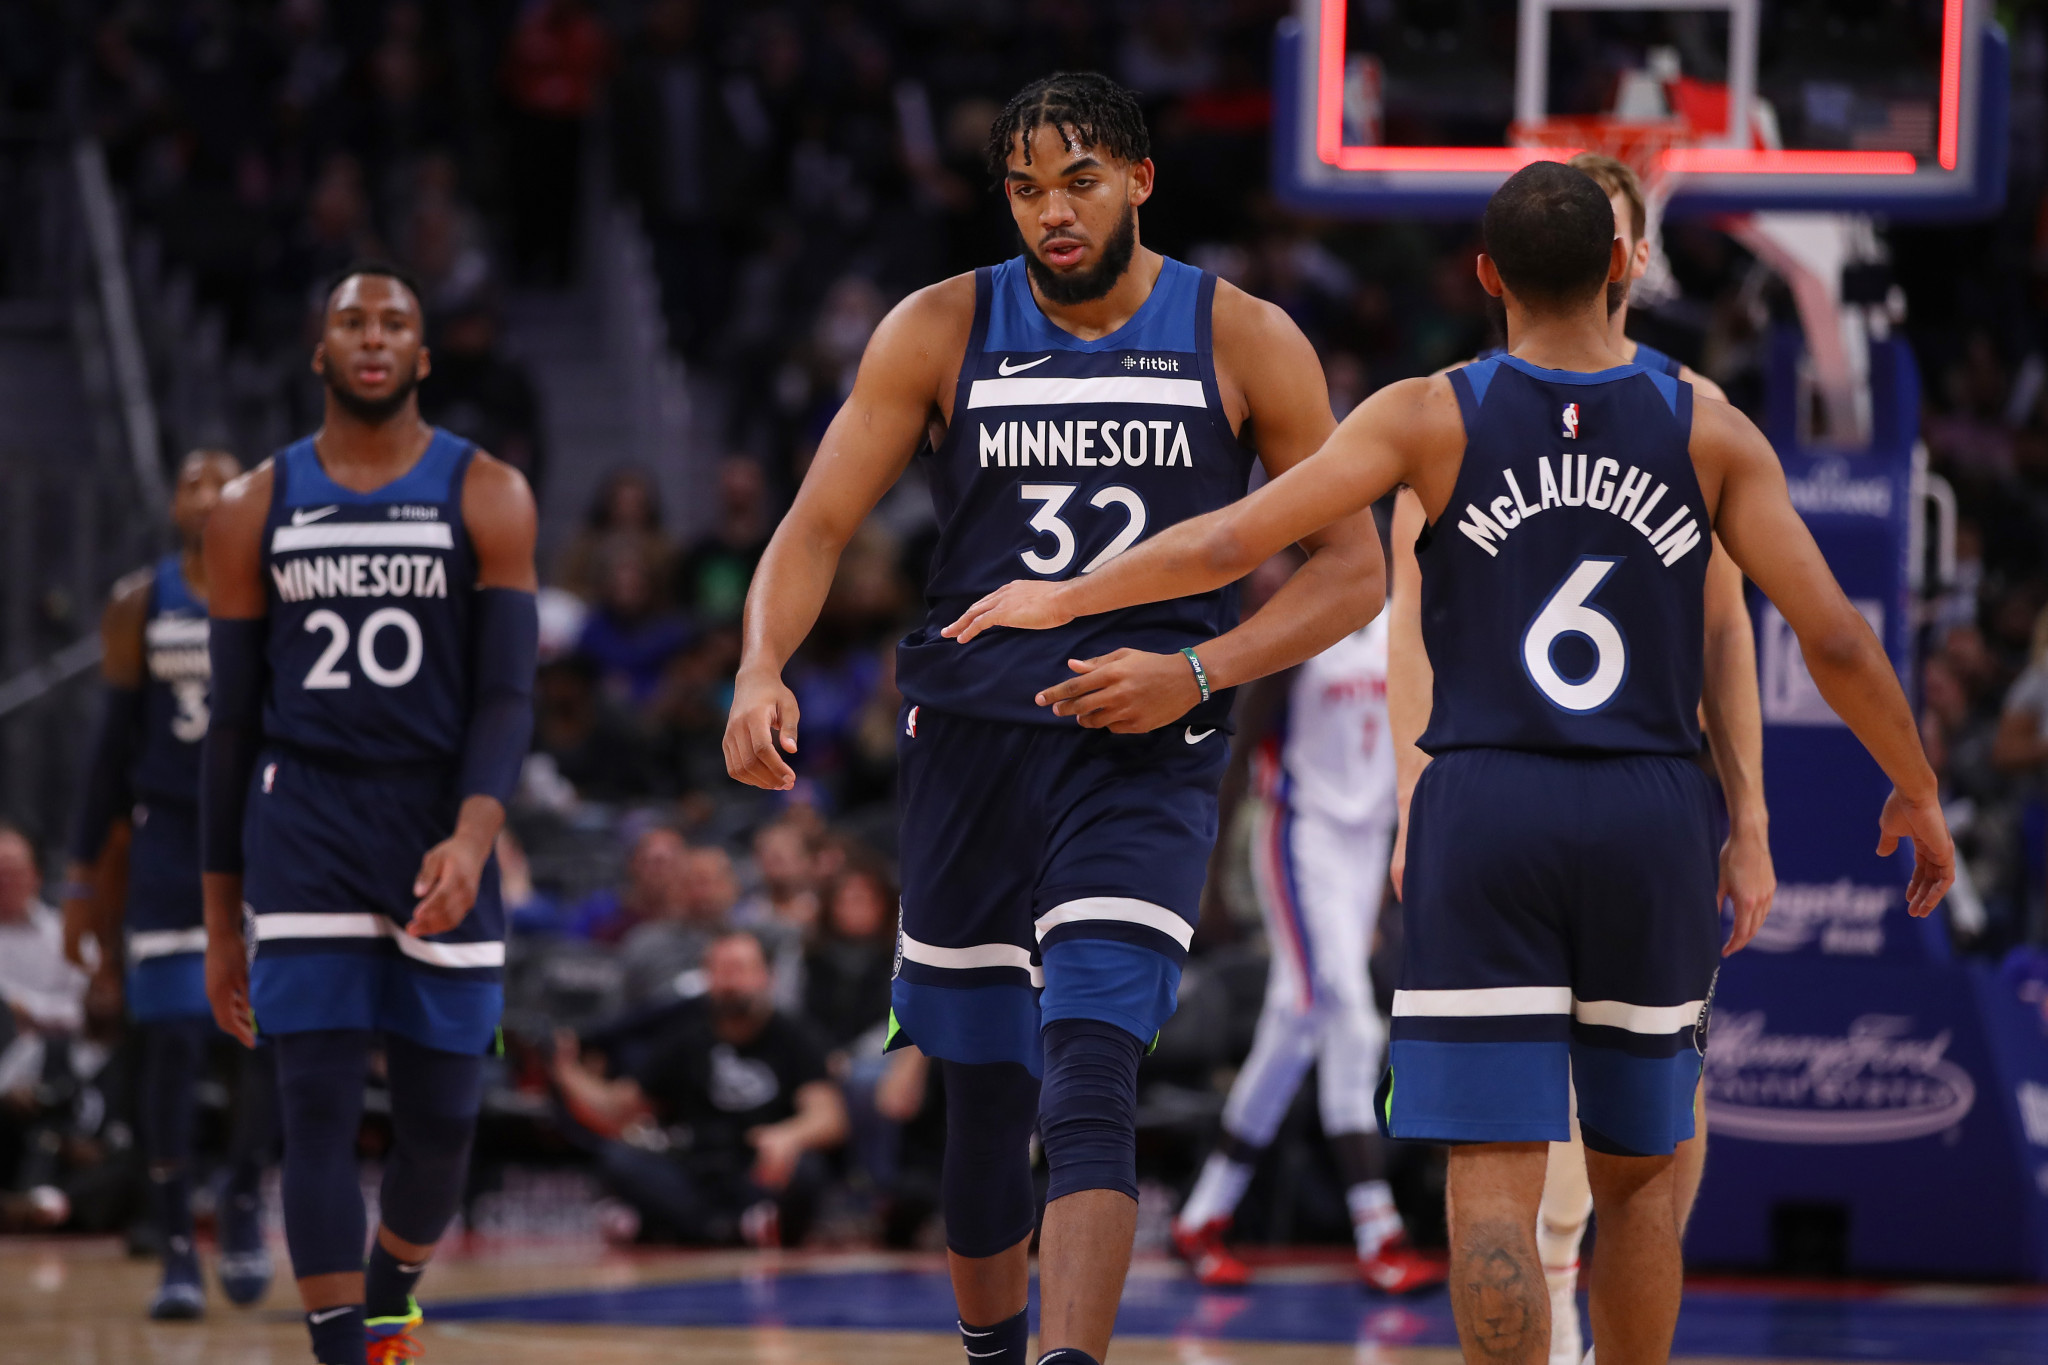 Nba Star Towns Lost Mother And Six Other Family Members To Coronavirus